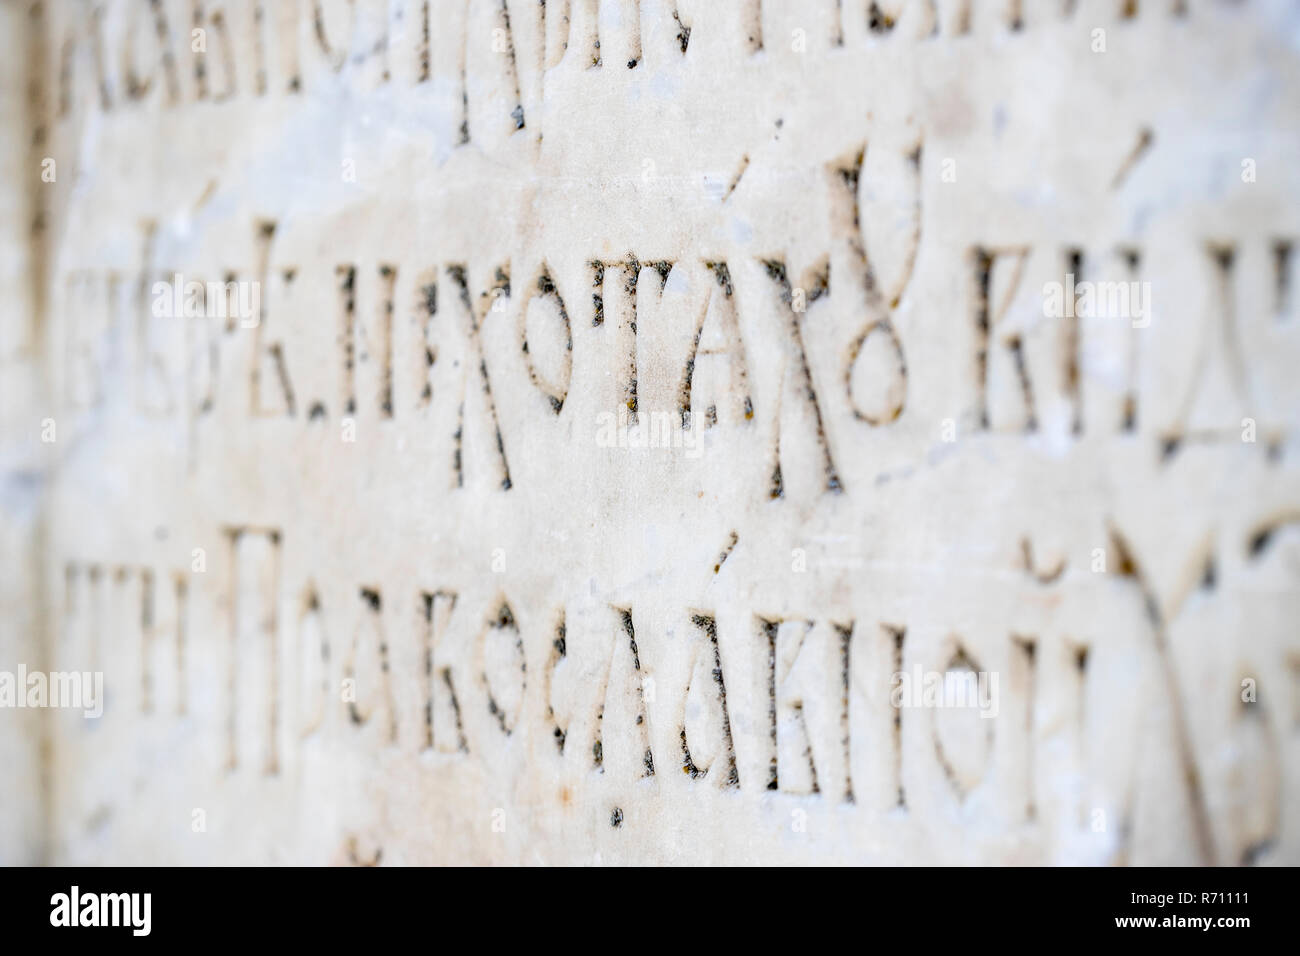 Fragment of the Cyrillic Old Slavic letter on the wall in the temple. Selected focus - Stock Image